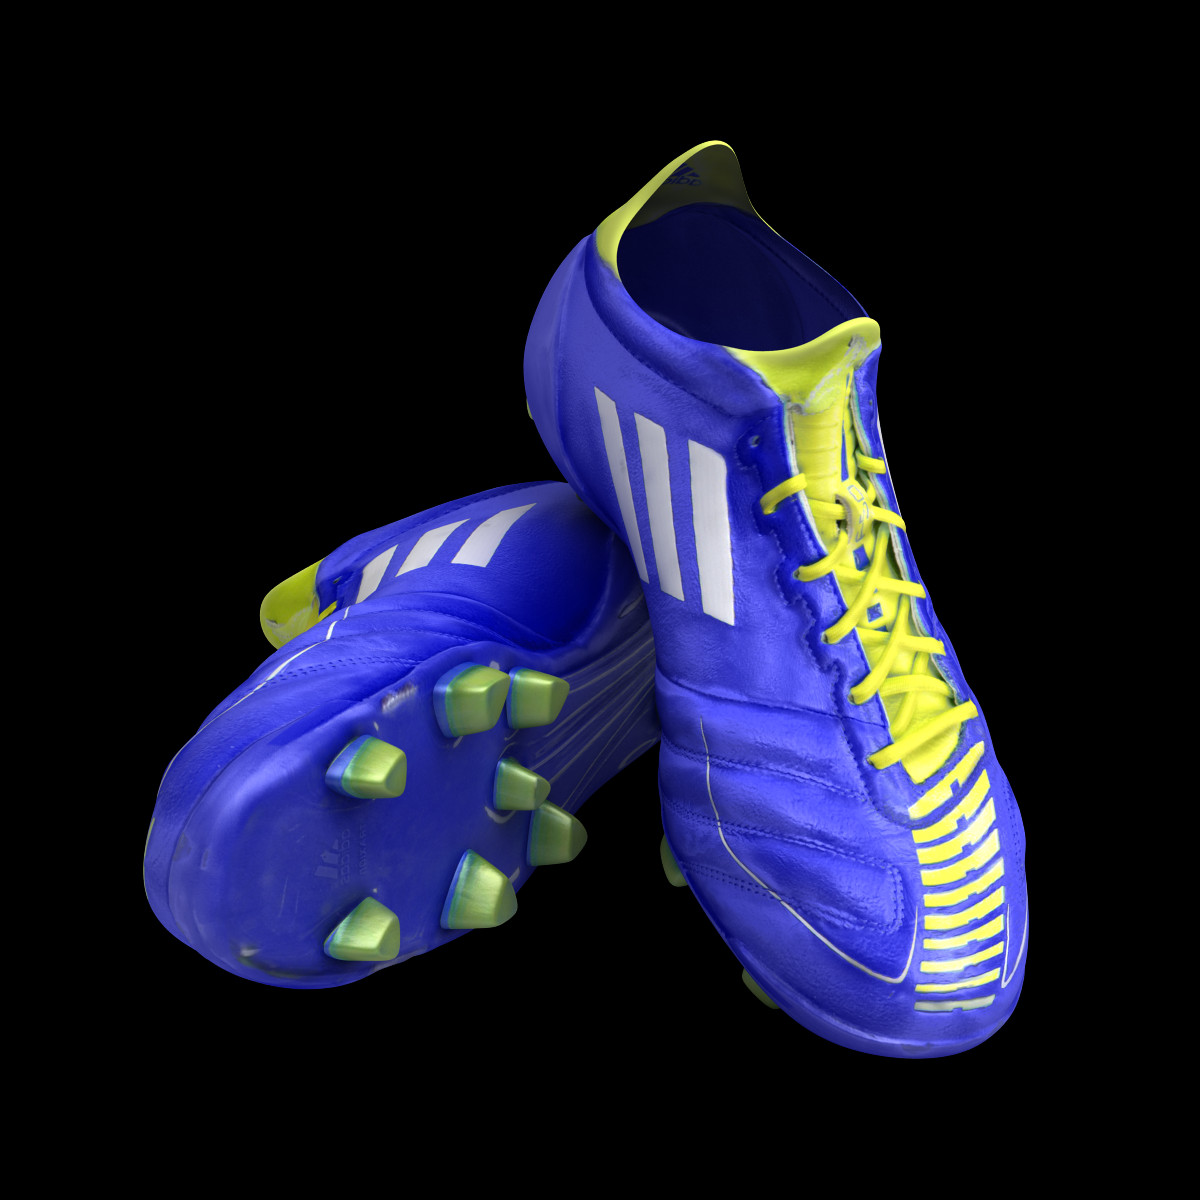 cleats02.png